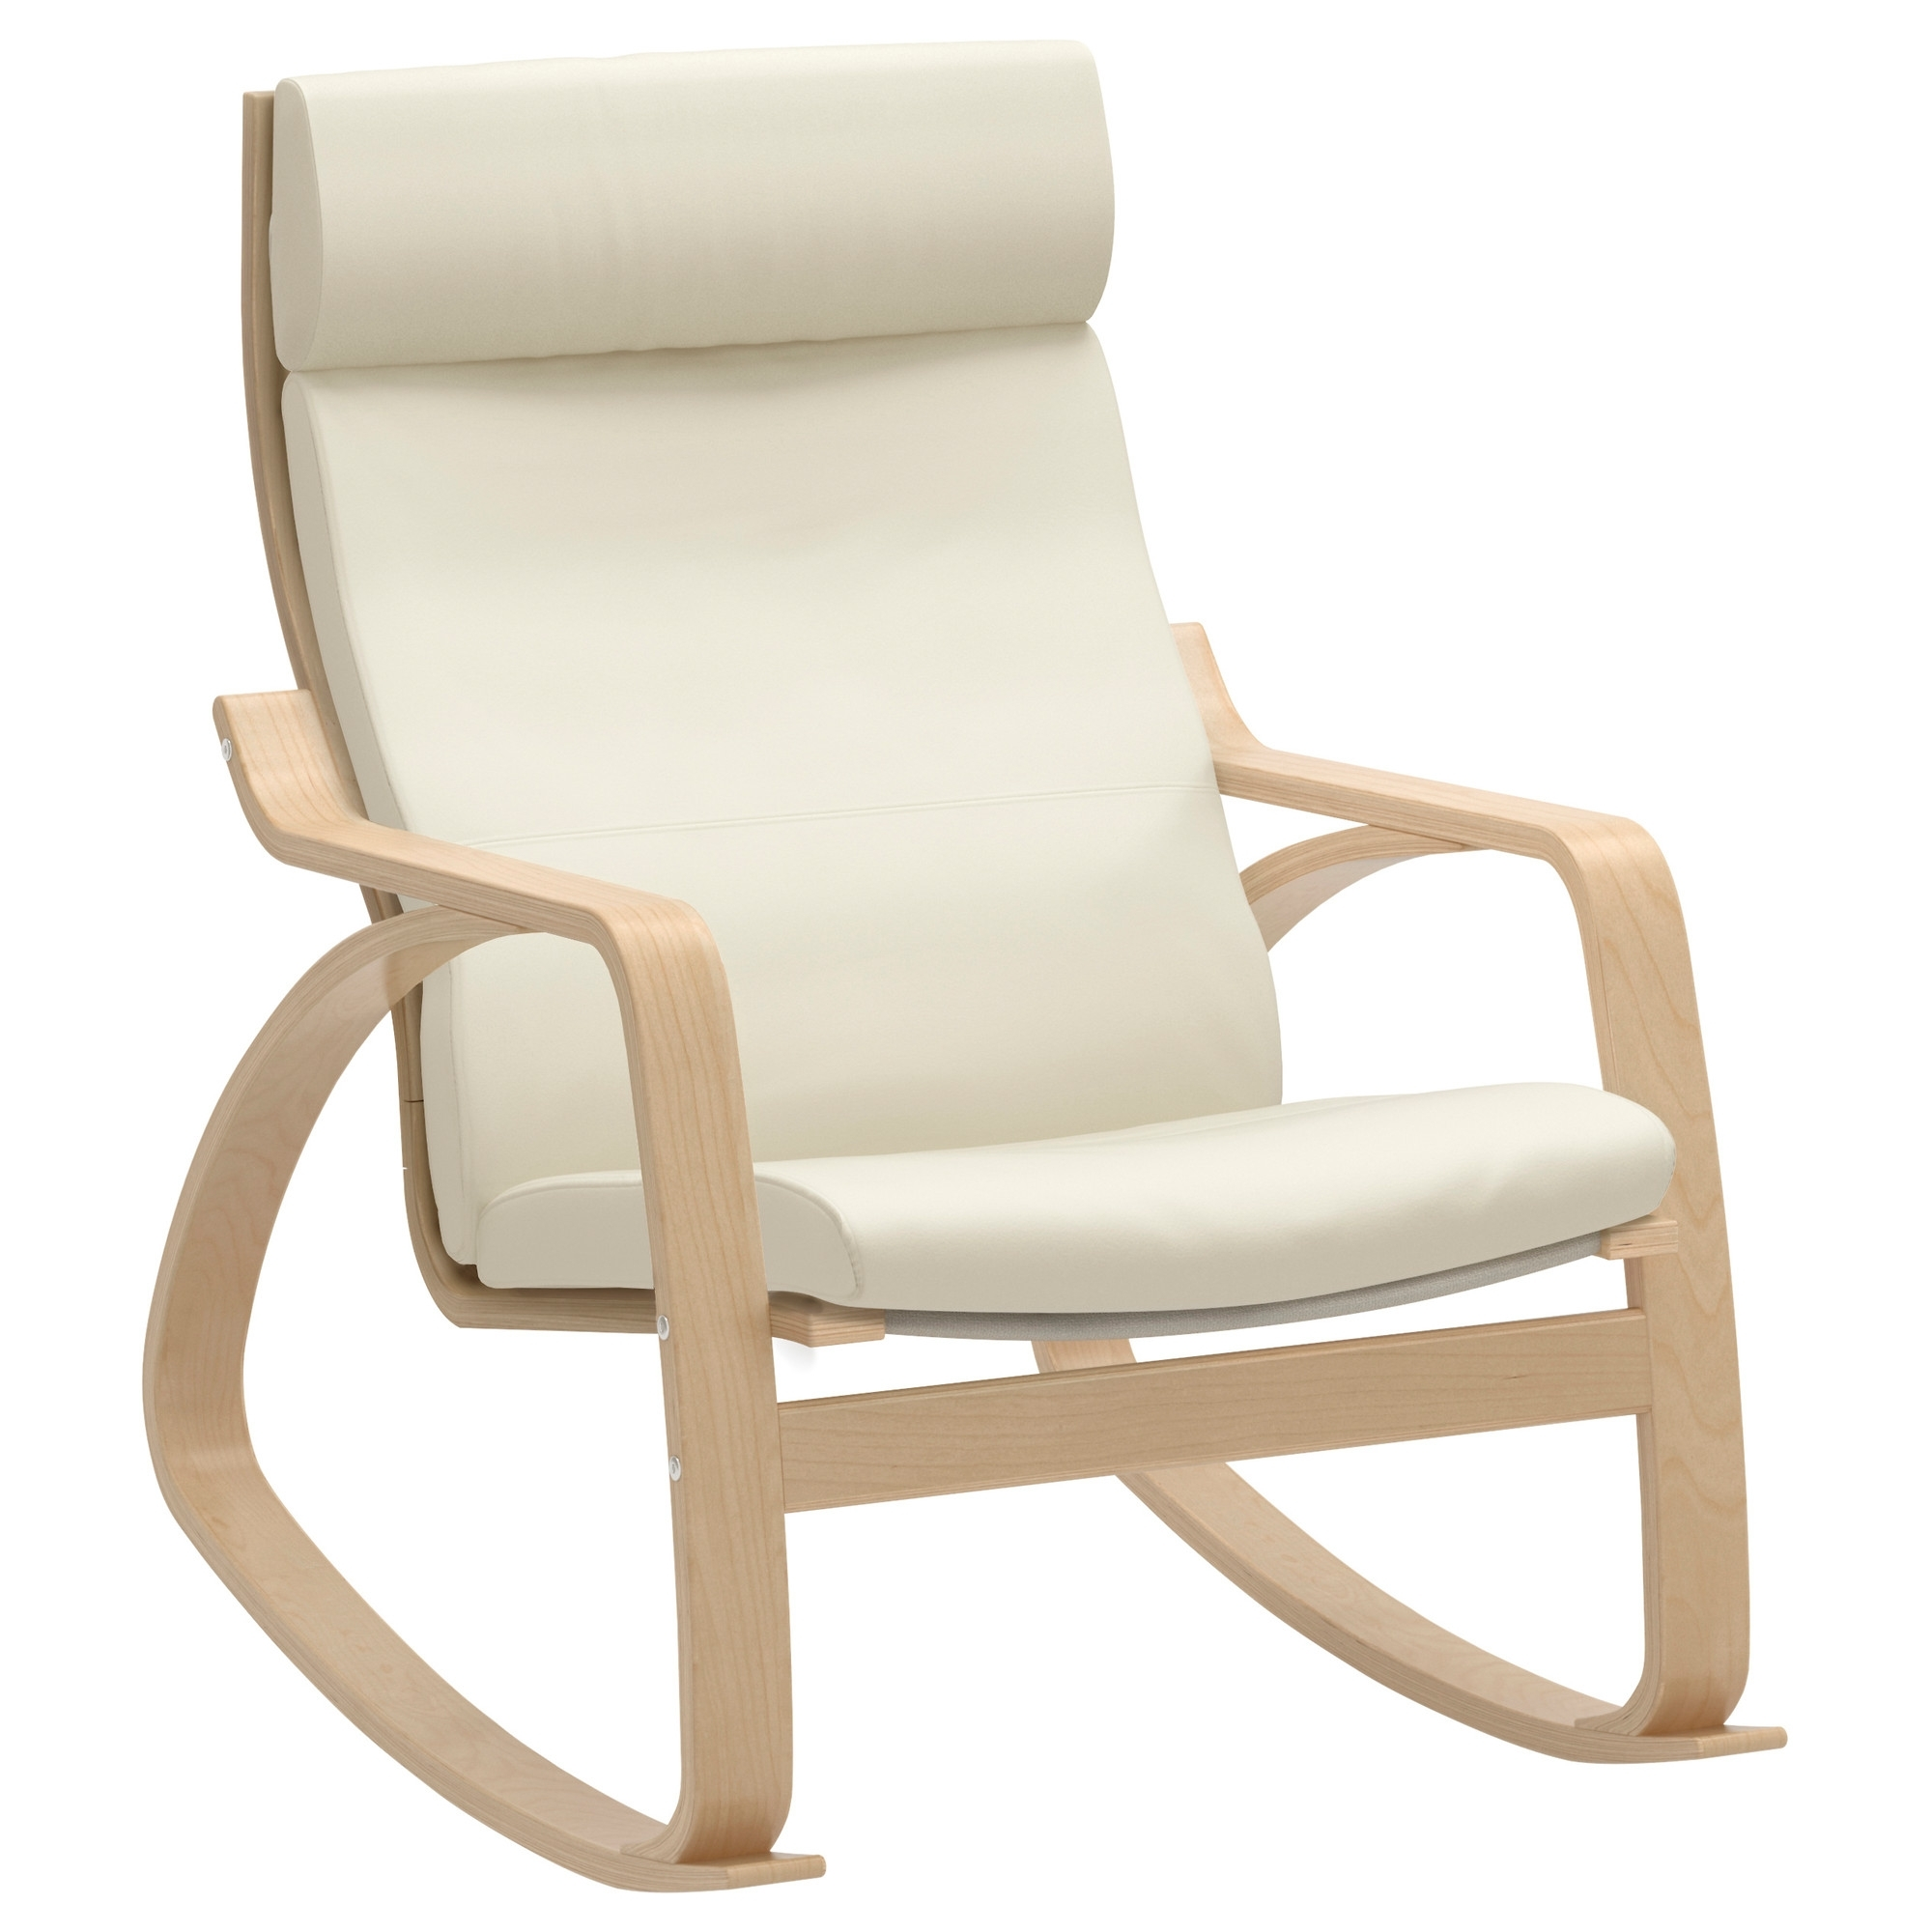 Most Recently Released Ikea Rocking Chair Nursery – Rocking Chairs Regarding Ikea Rocking Chairs (View 14 of 20)